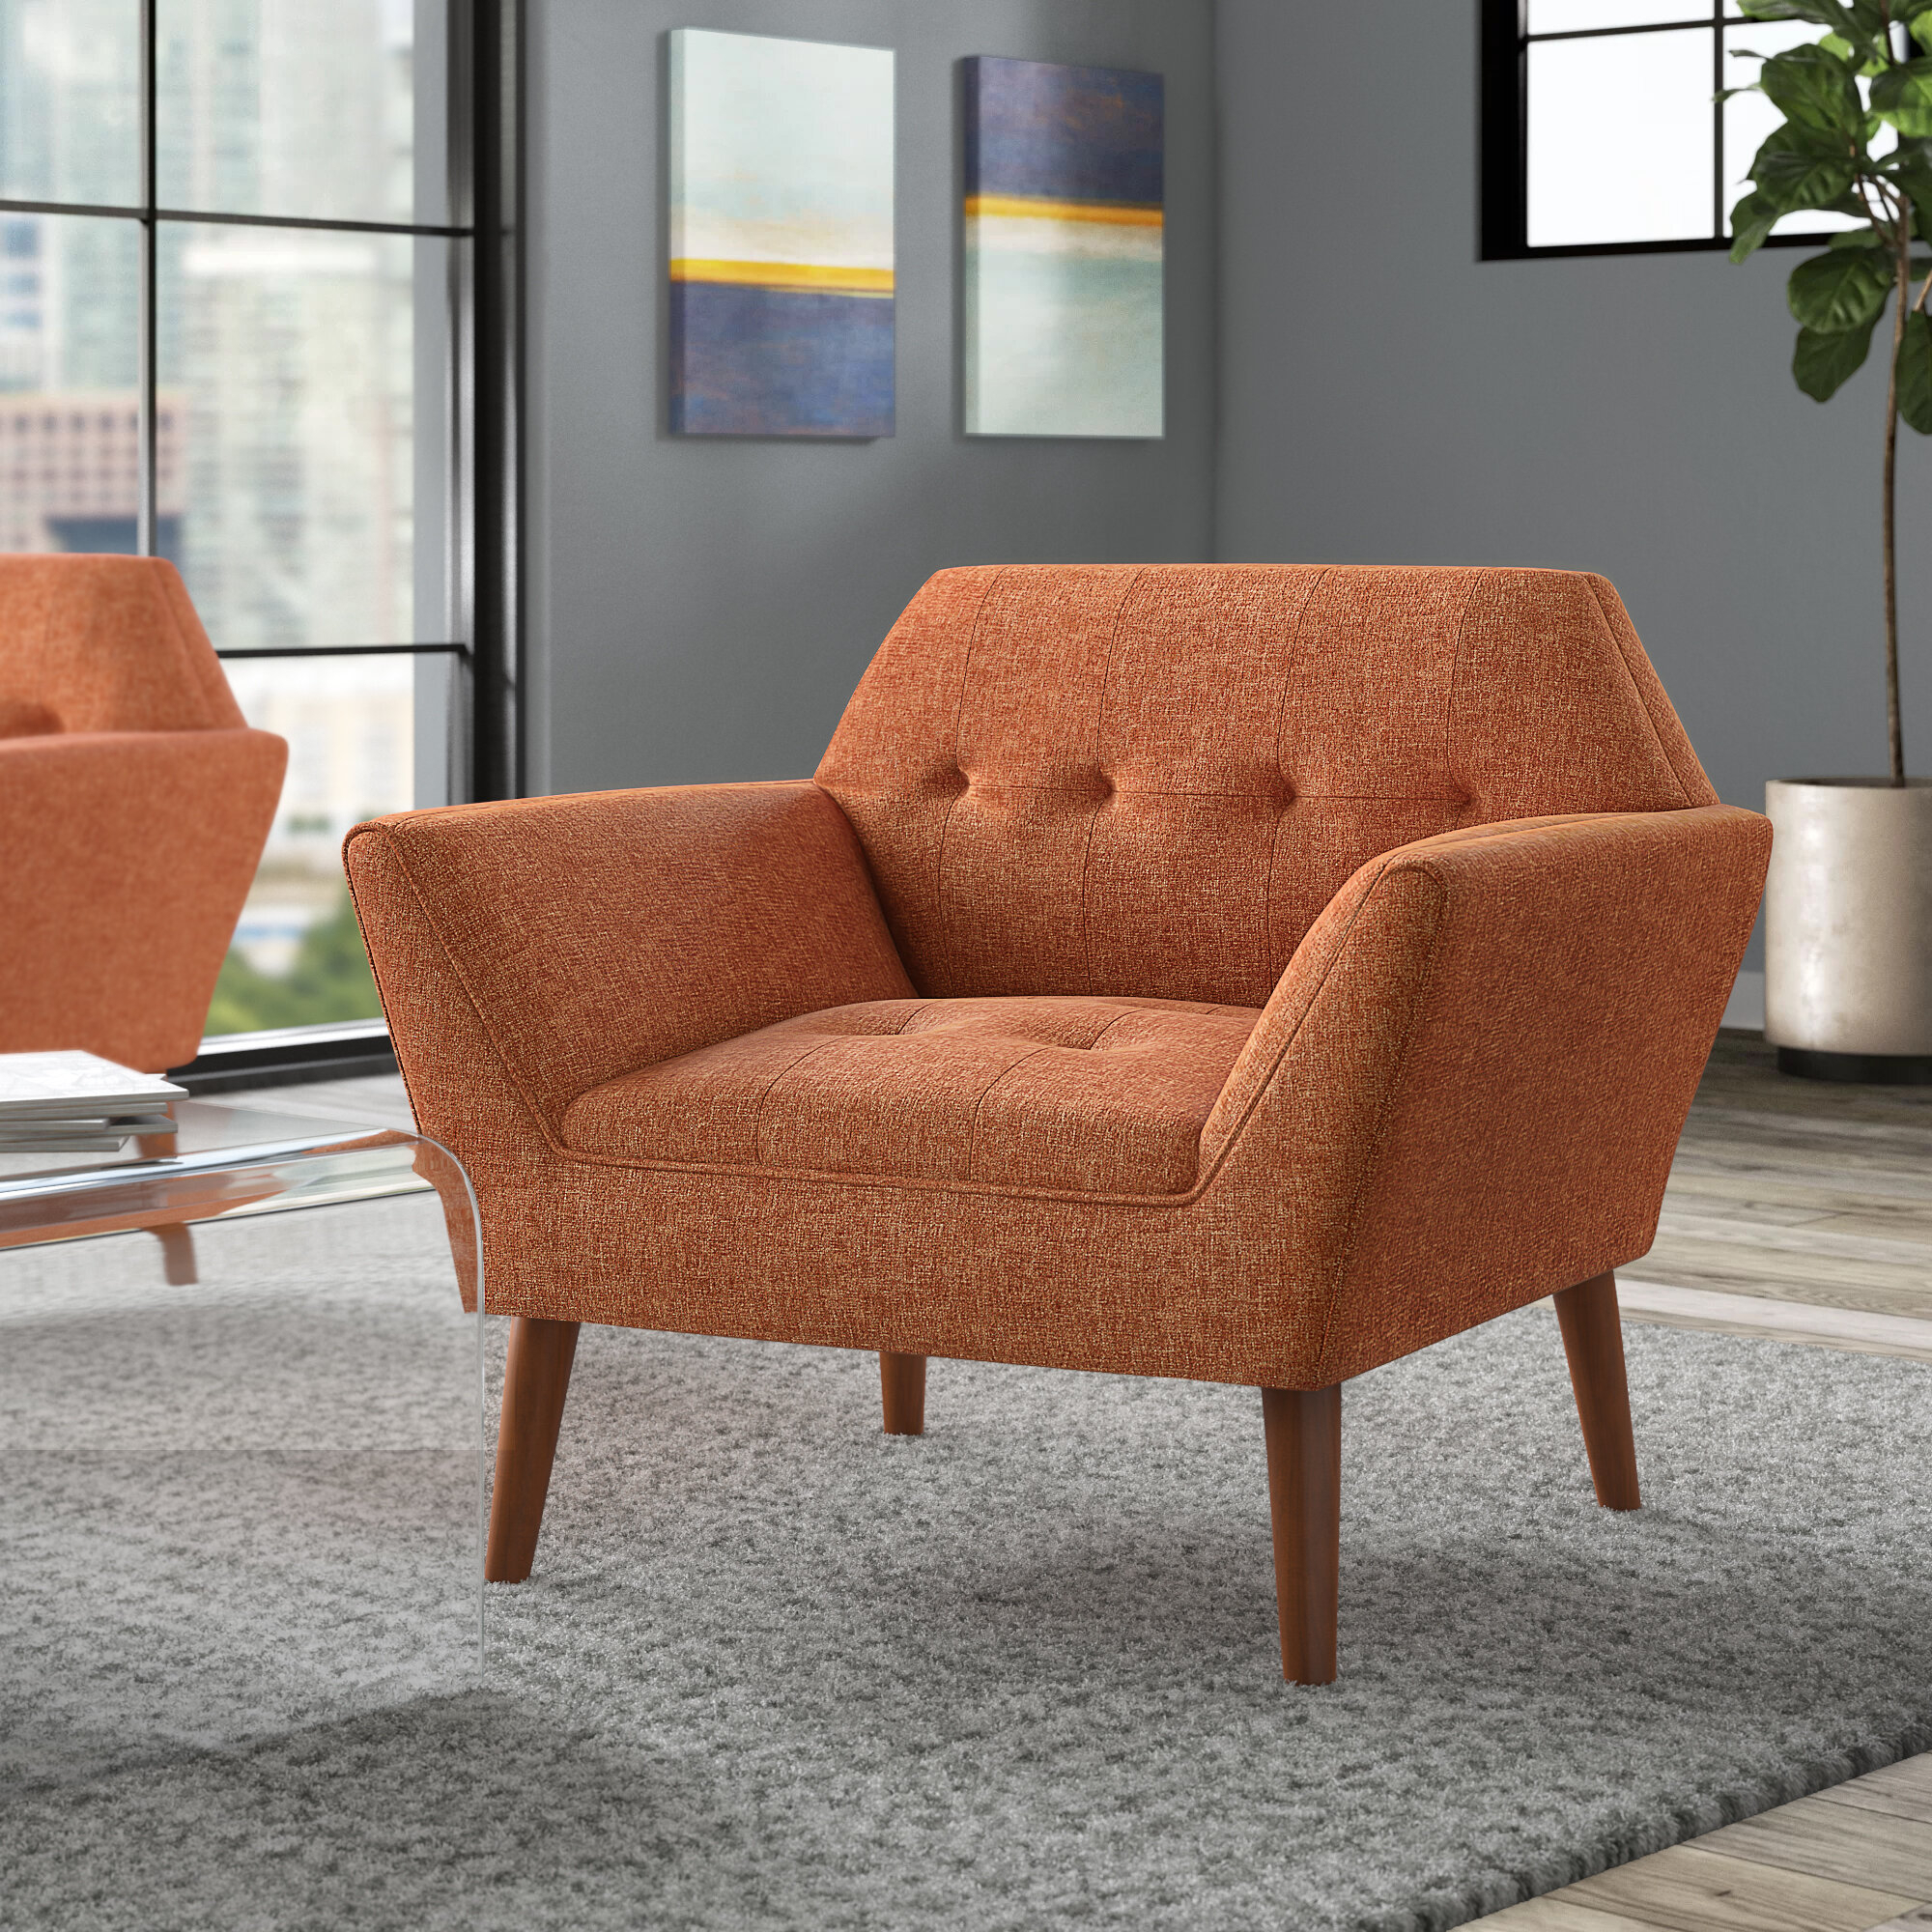 Orange & White Accent Chairs You'Ll Love In 2021 | Wayfair Regarding Belz Tufted Polyester Armchairs (View 8 of 15)